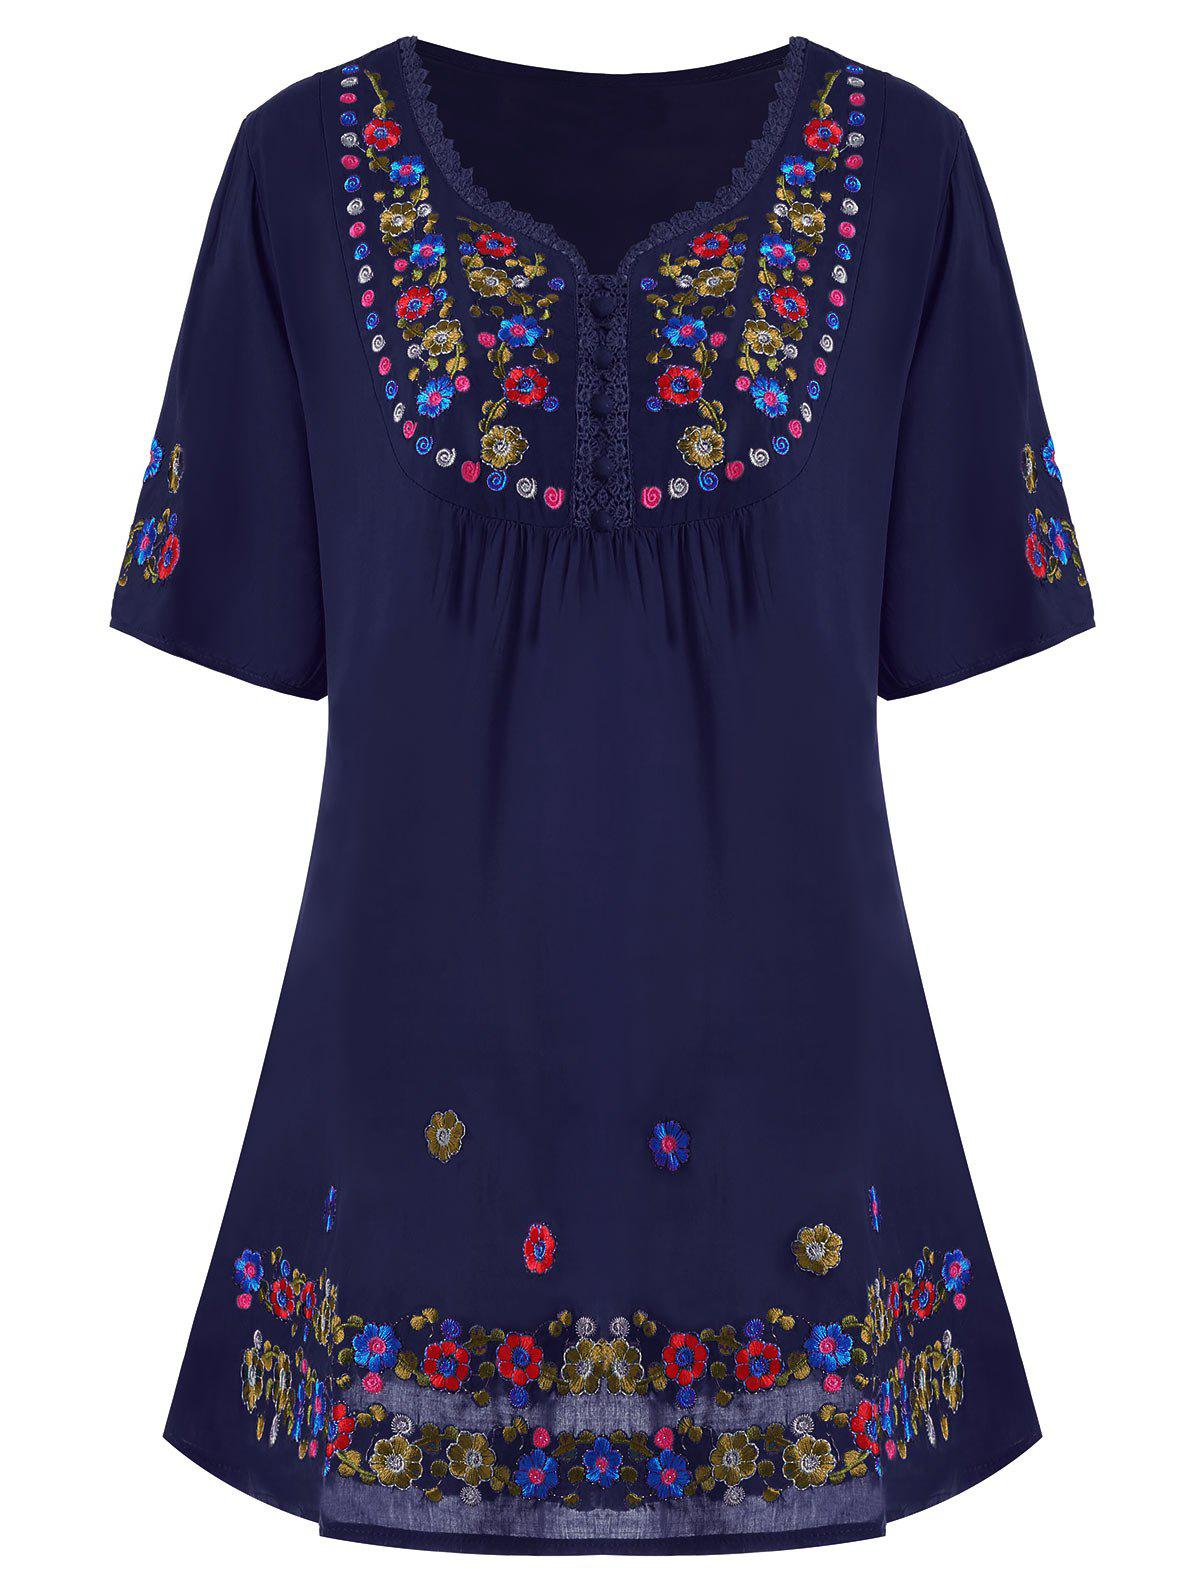 Store Plus Size Floral Embroidered Tunic Top